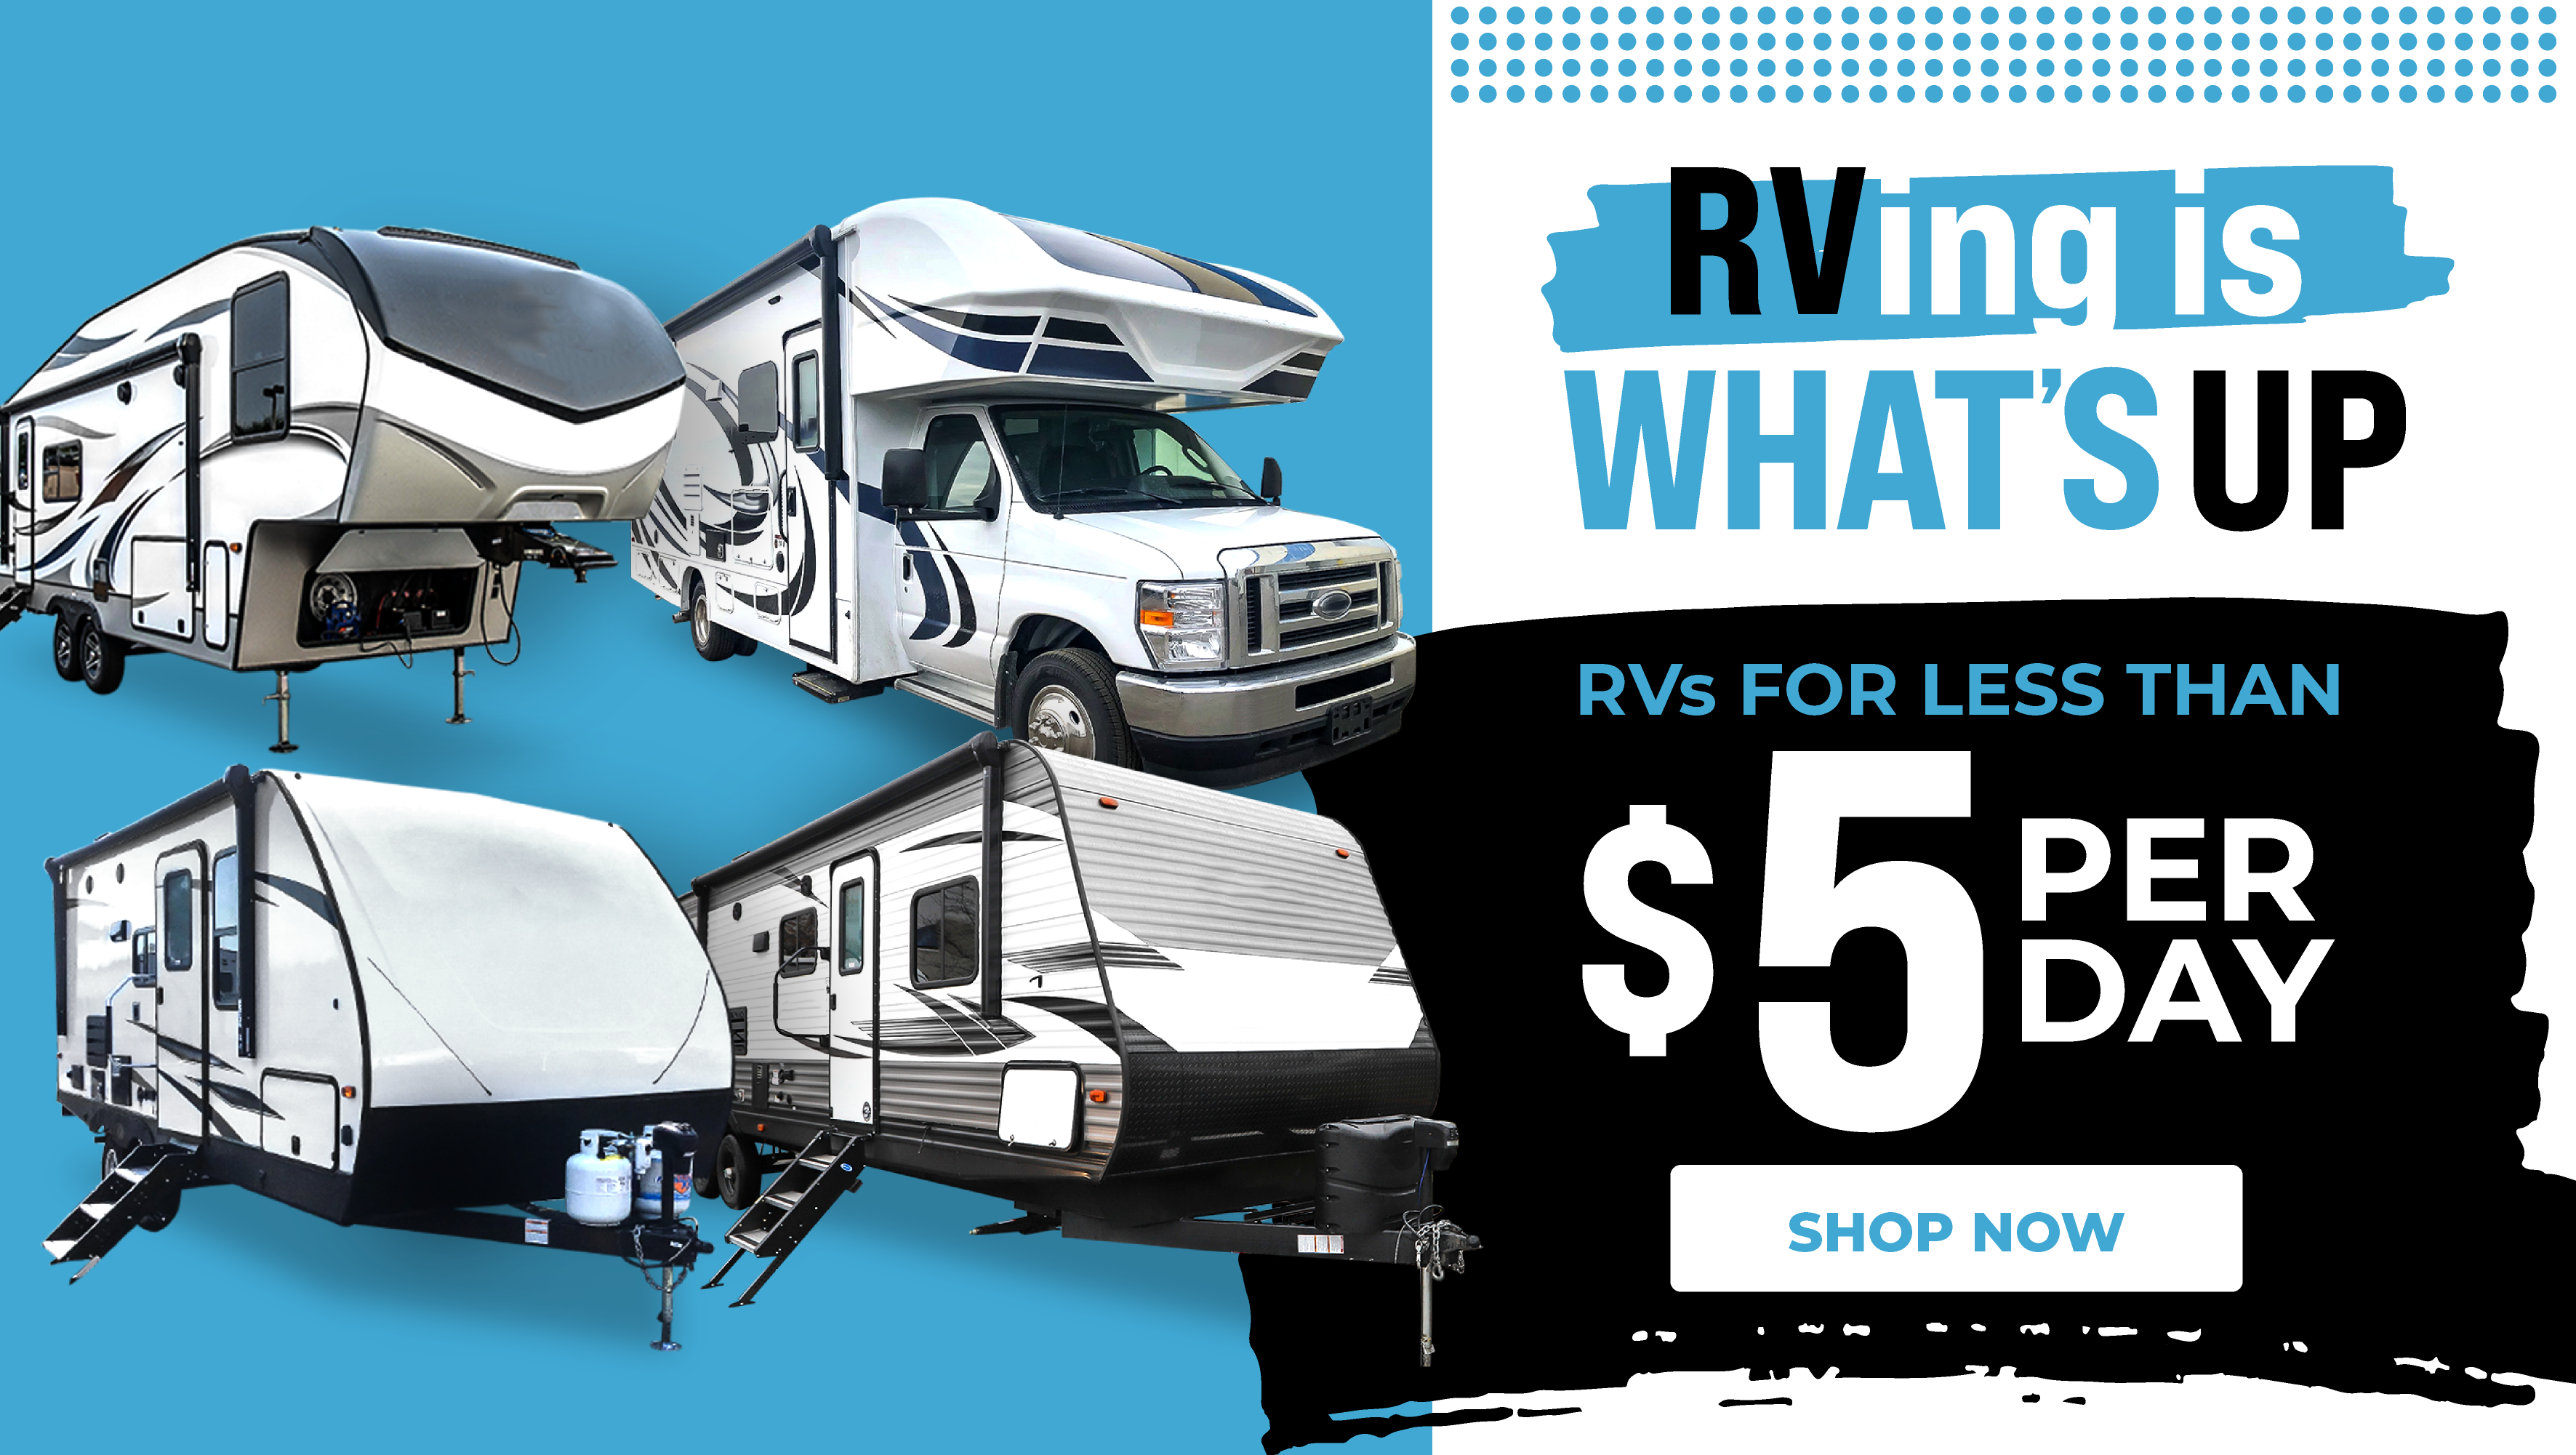 RVing is What's up: RVs for less than $5 per day. Shop now